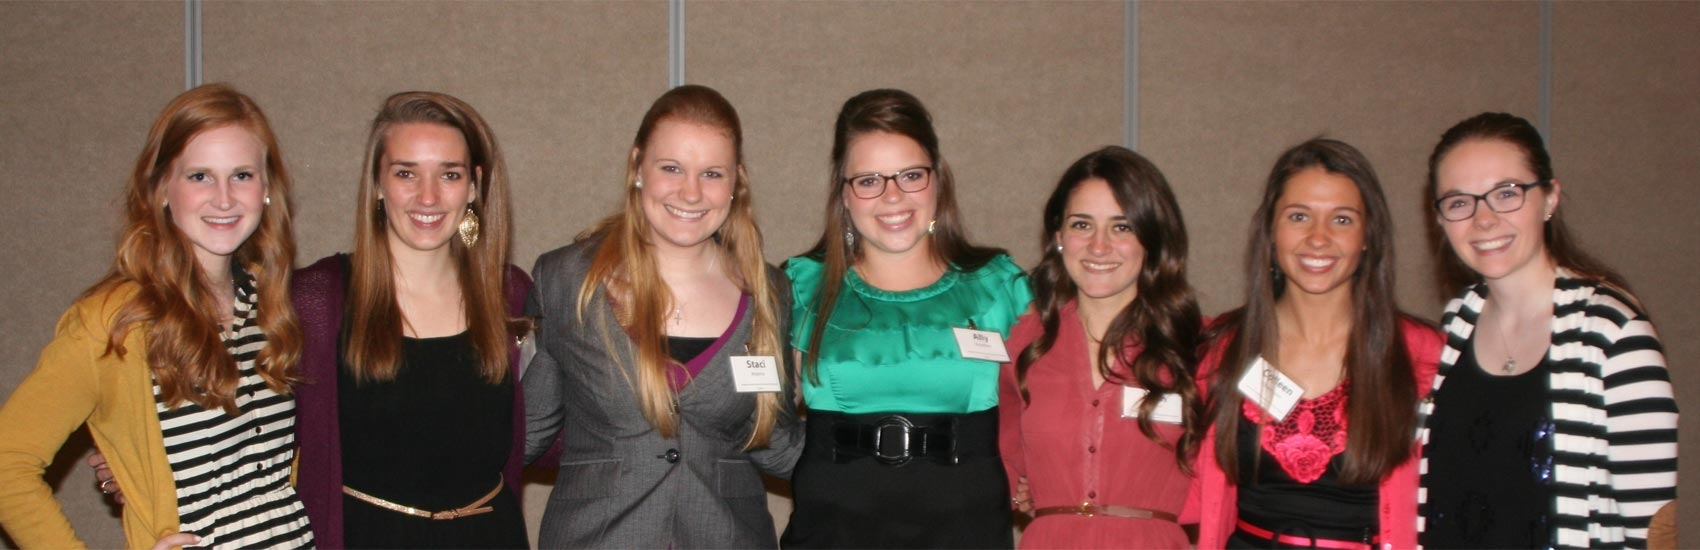 students at the academic scholarship banquet